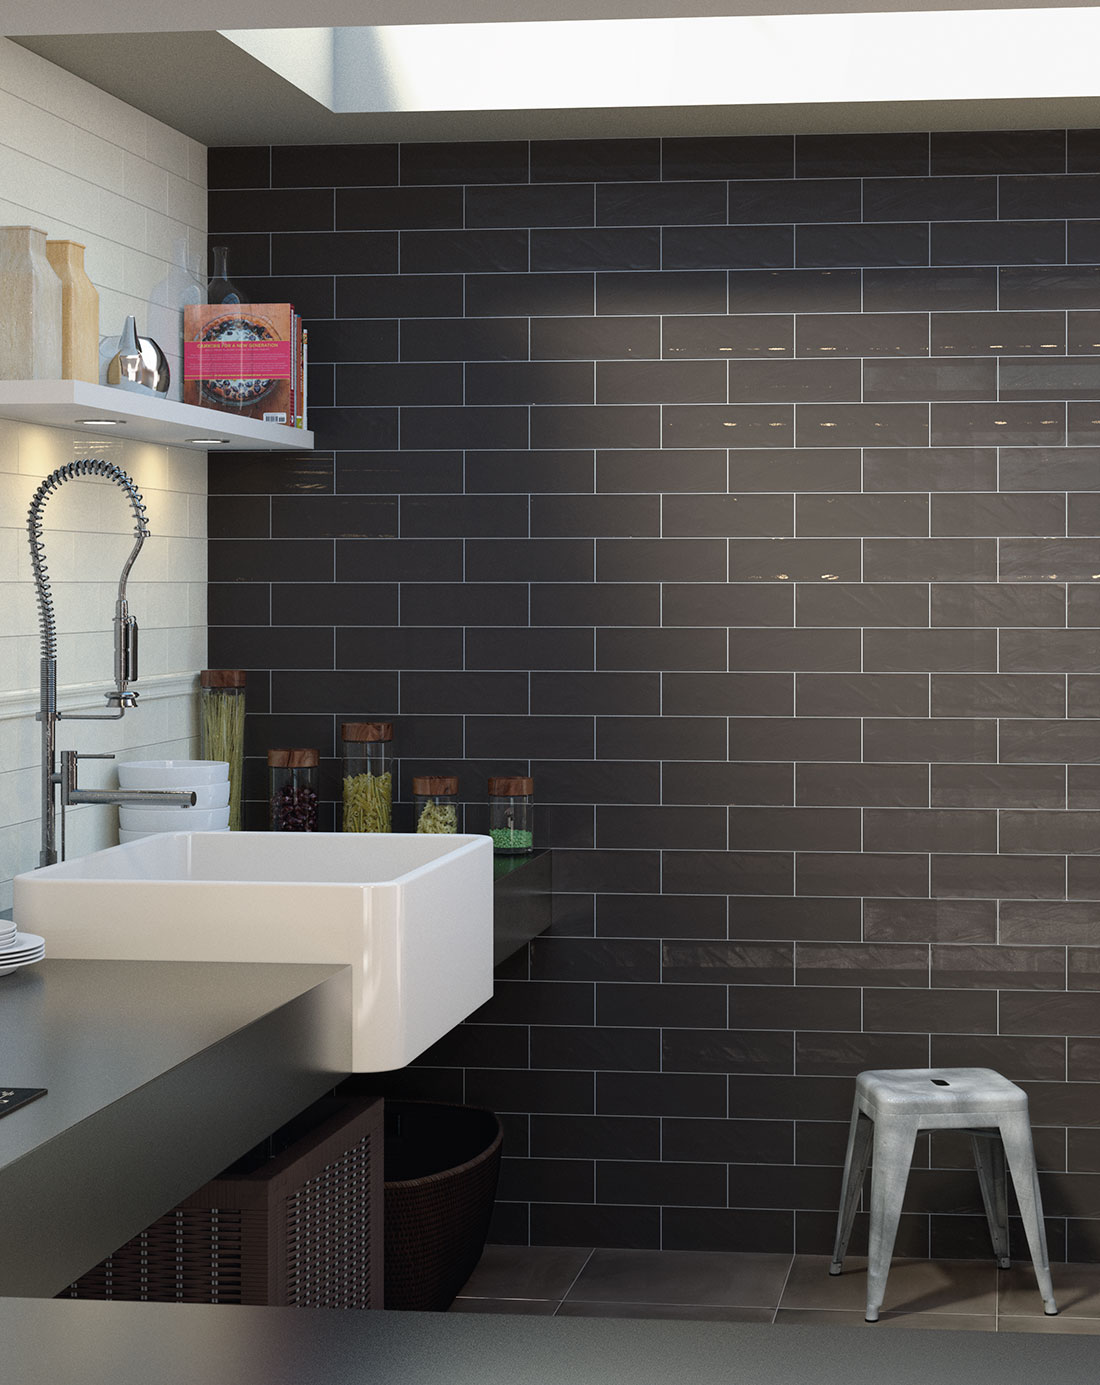 Bulevar Ripple Antique Anthracite Wall Tiles Bathroom